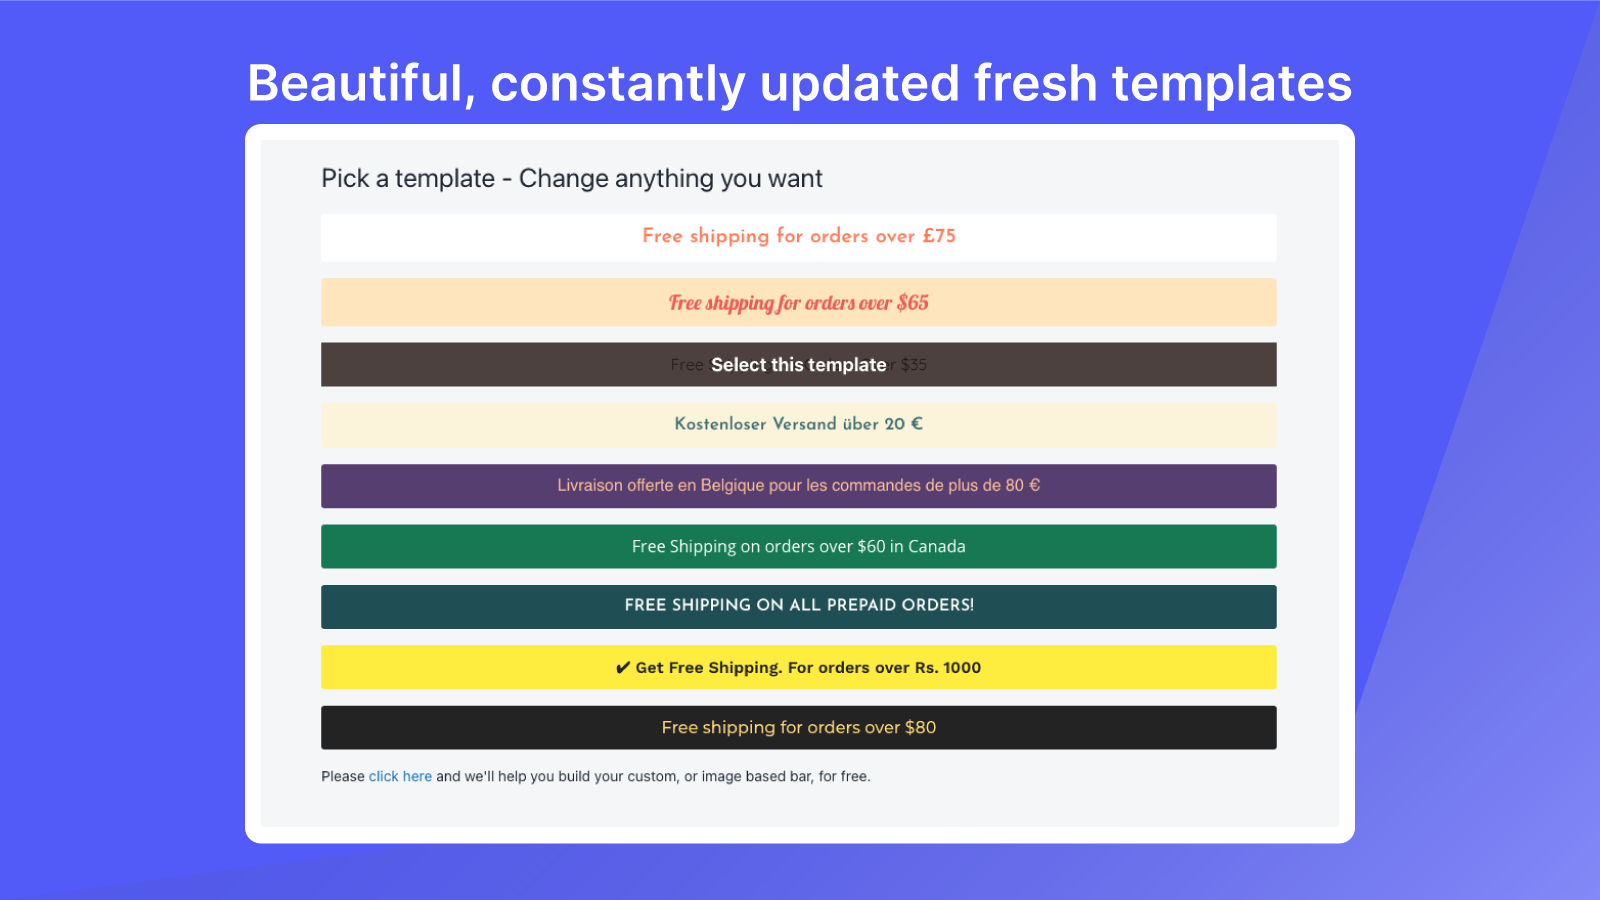 Beautiful, Multi-language, constantly updated fresh templates